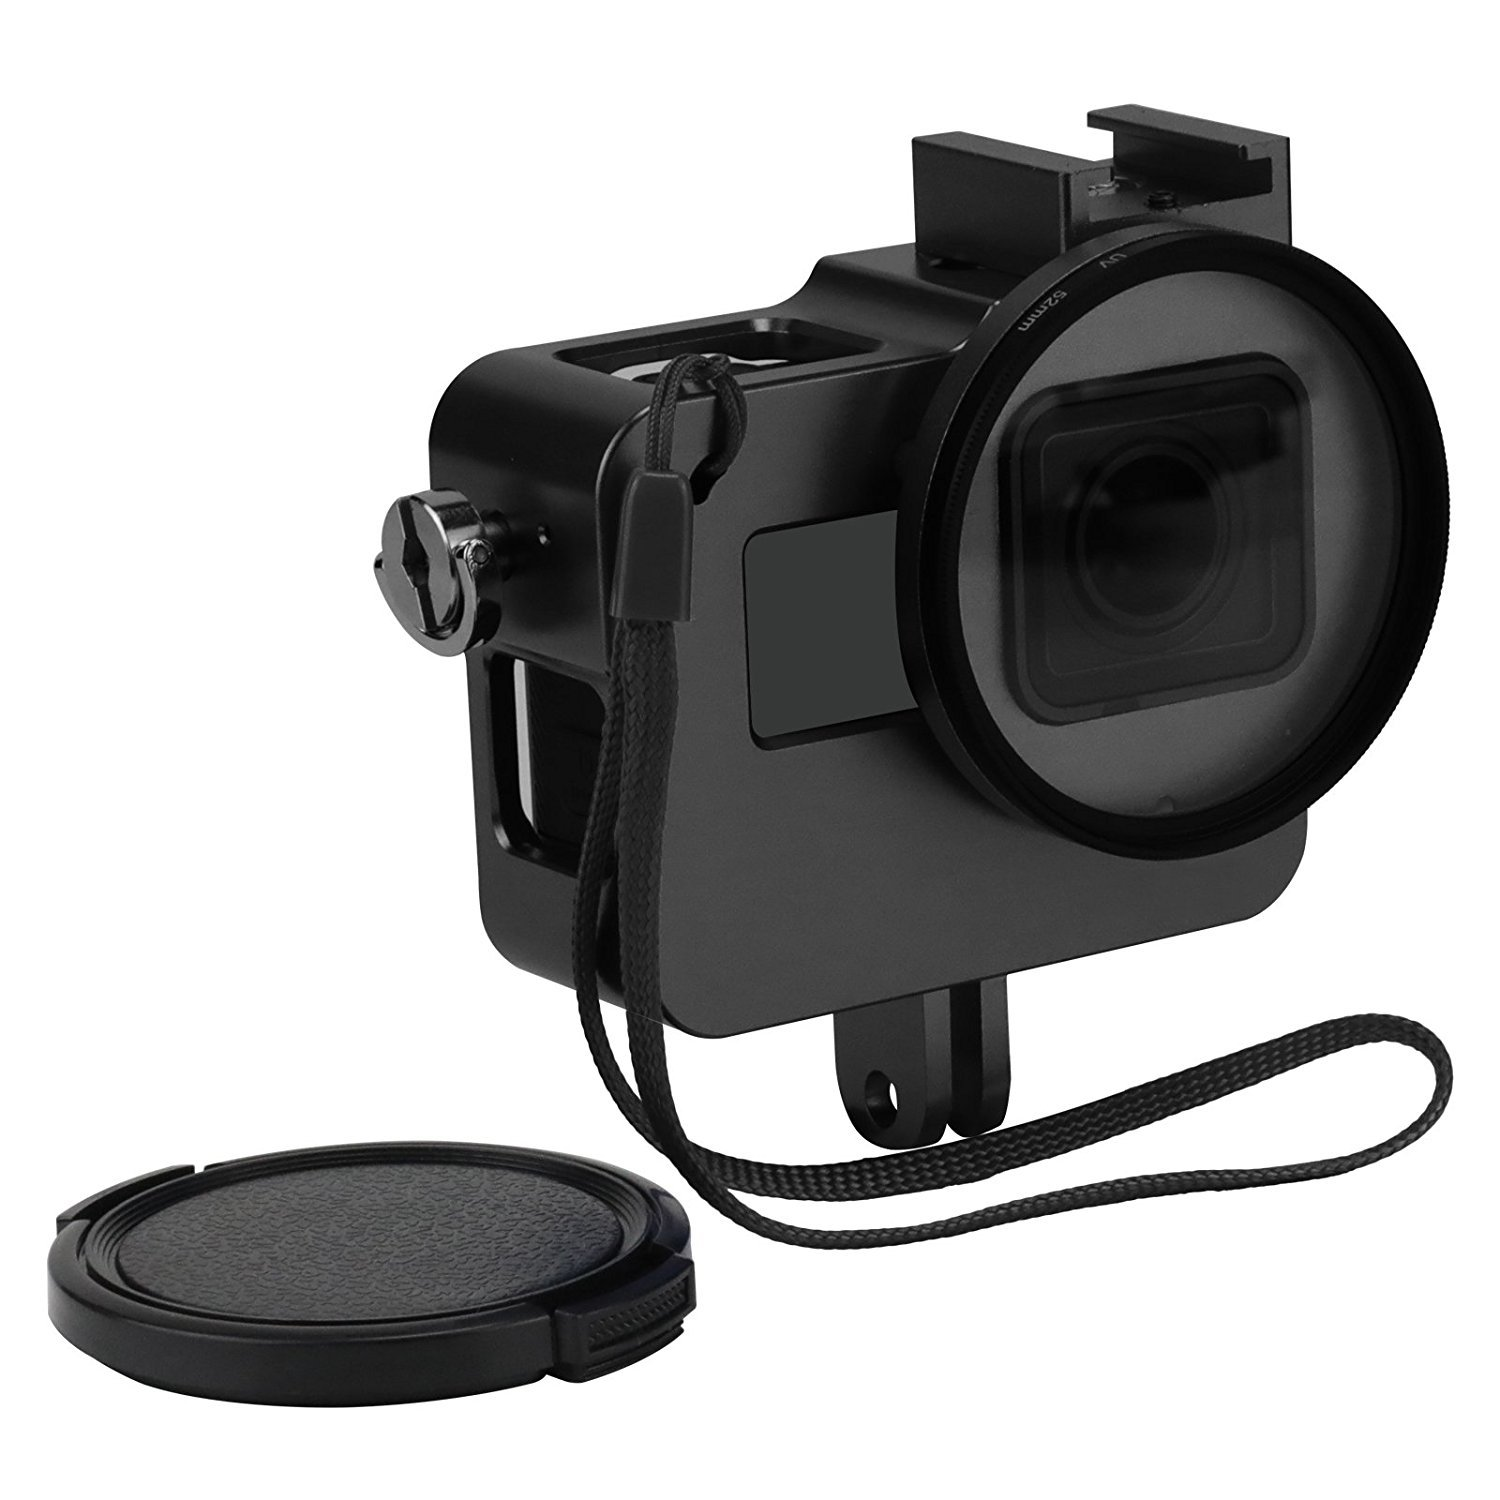 D&F Black CNC Aluminum Alloy Housing Sport Camera Shell Box Frame Mount Prevent Overheating with Protective Lens for Gopro HERO 5 by D&F